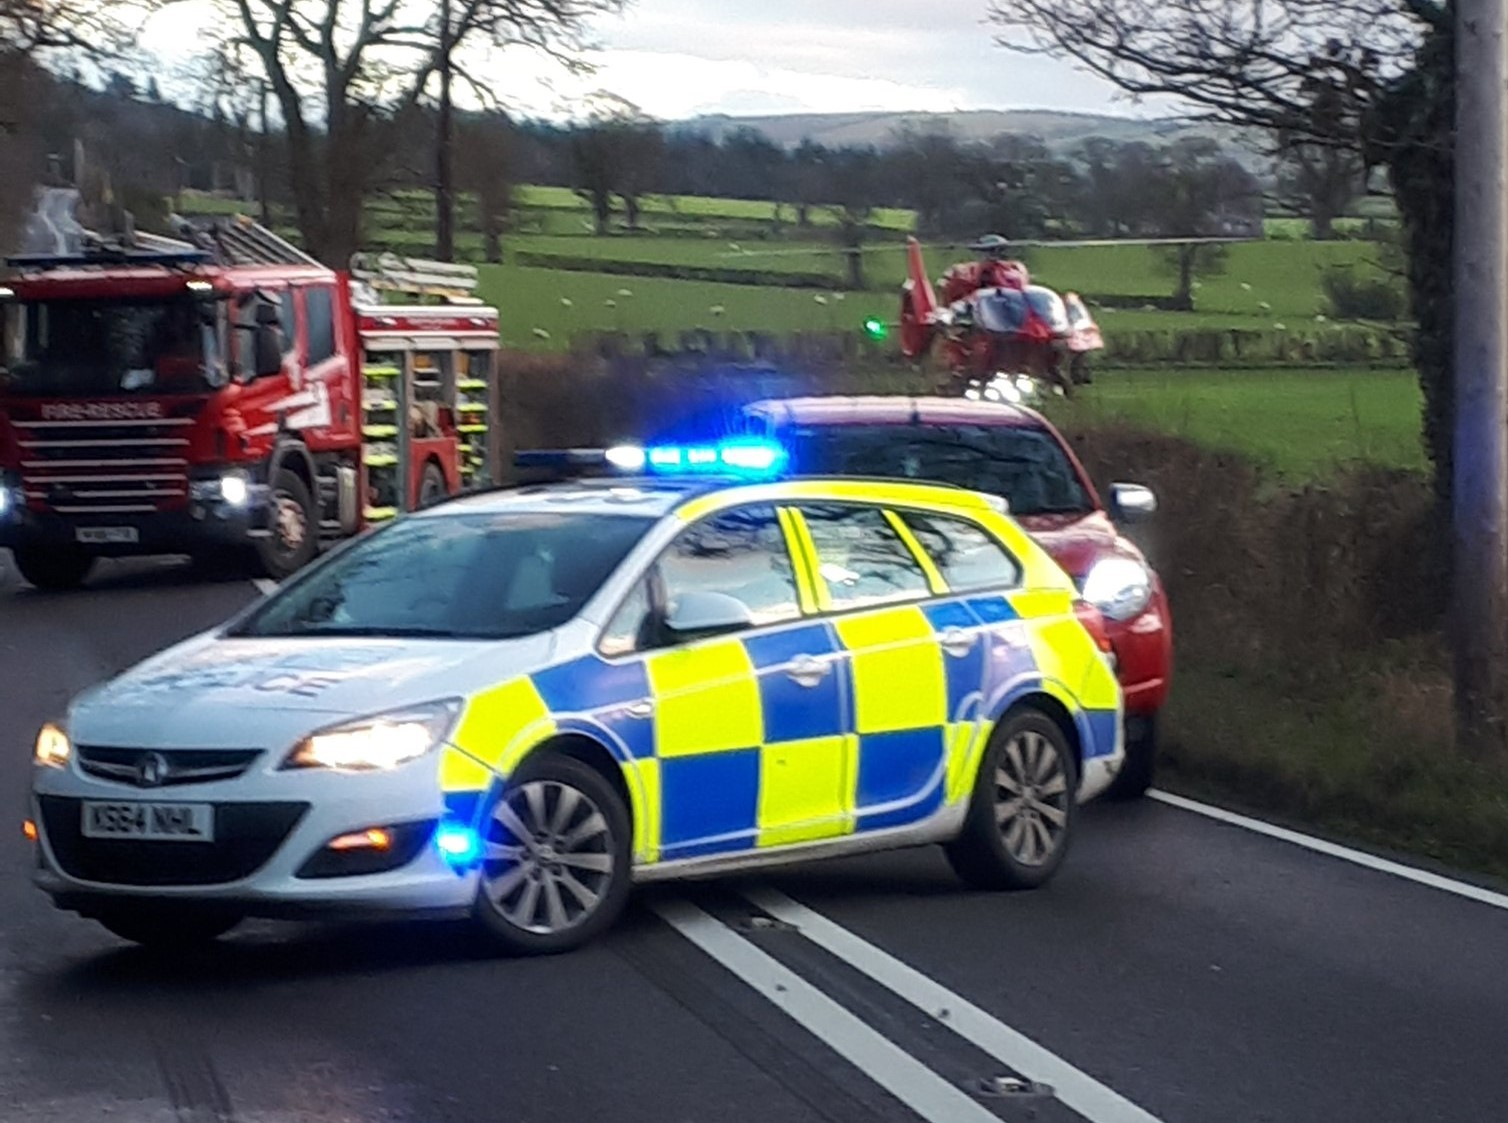 The A490 between Chirbury and Churchstoke was closed while emergency services dealt with the incident (Picture: @SouthShropCops/Twitter)